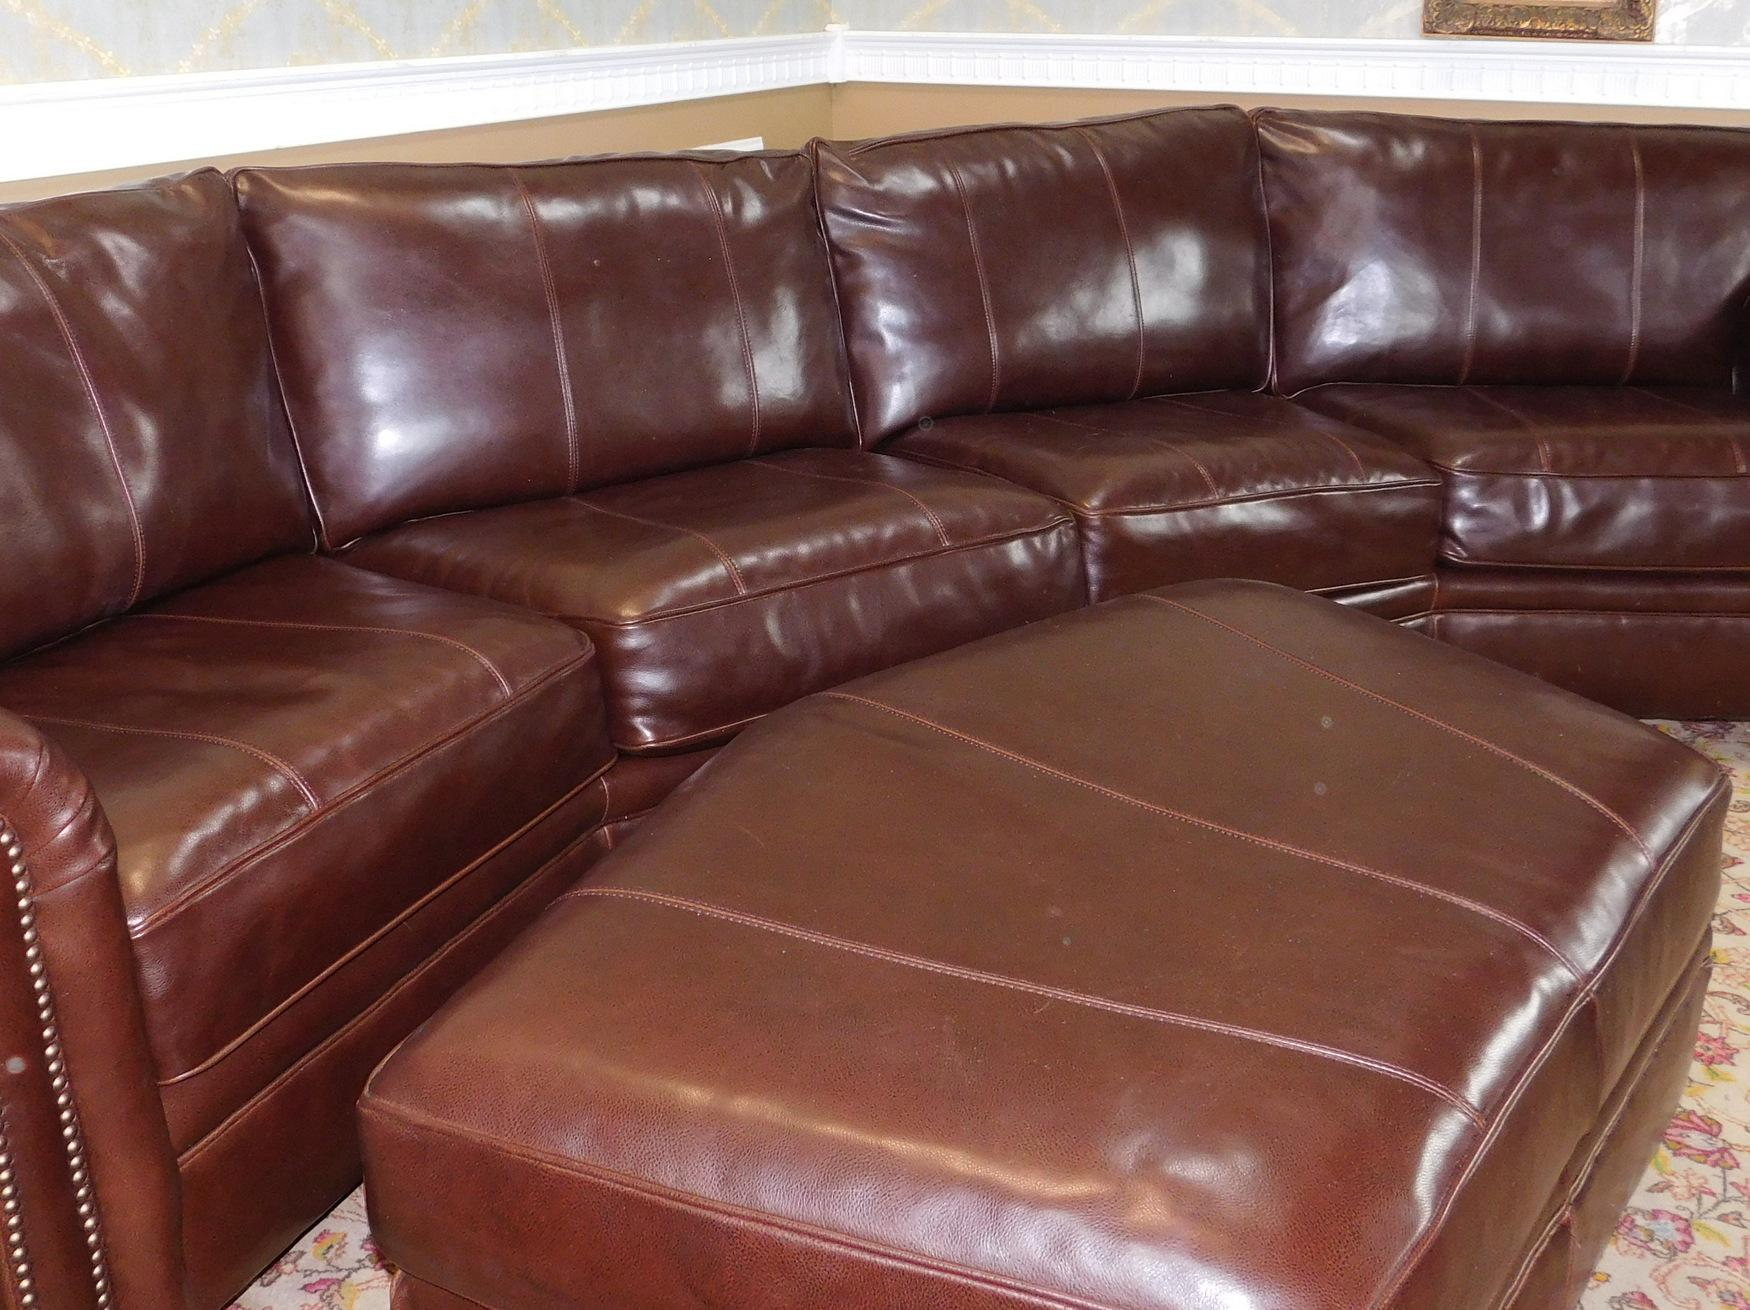 bernhardt brown leather club chair dining room seat covers walmart 3-piece sectional sofa & ottoman | chairish